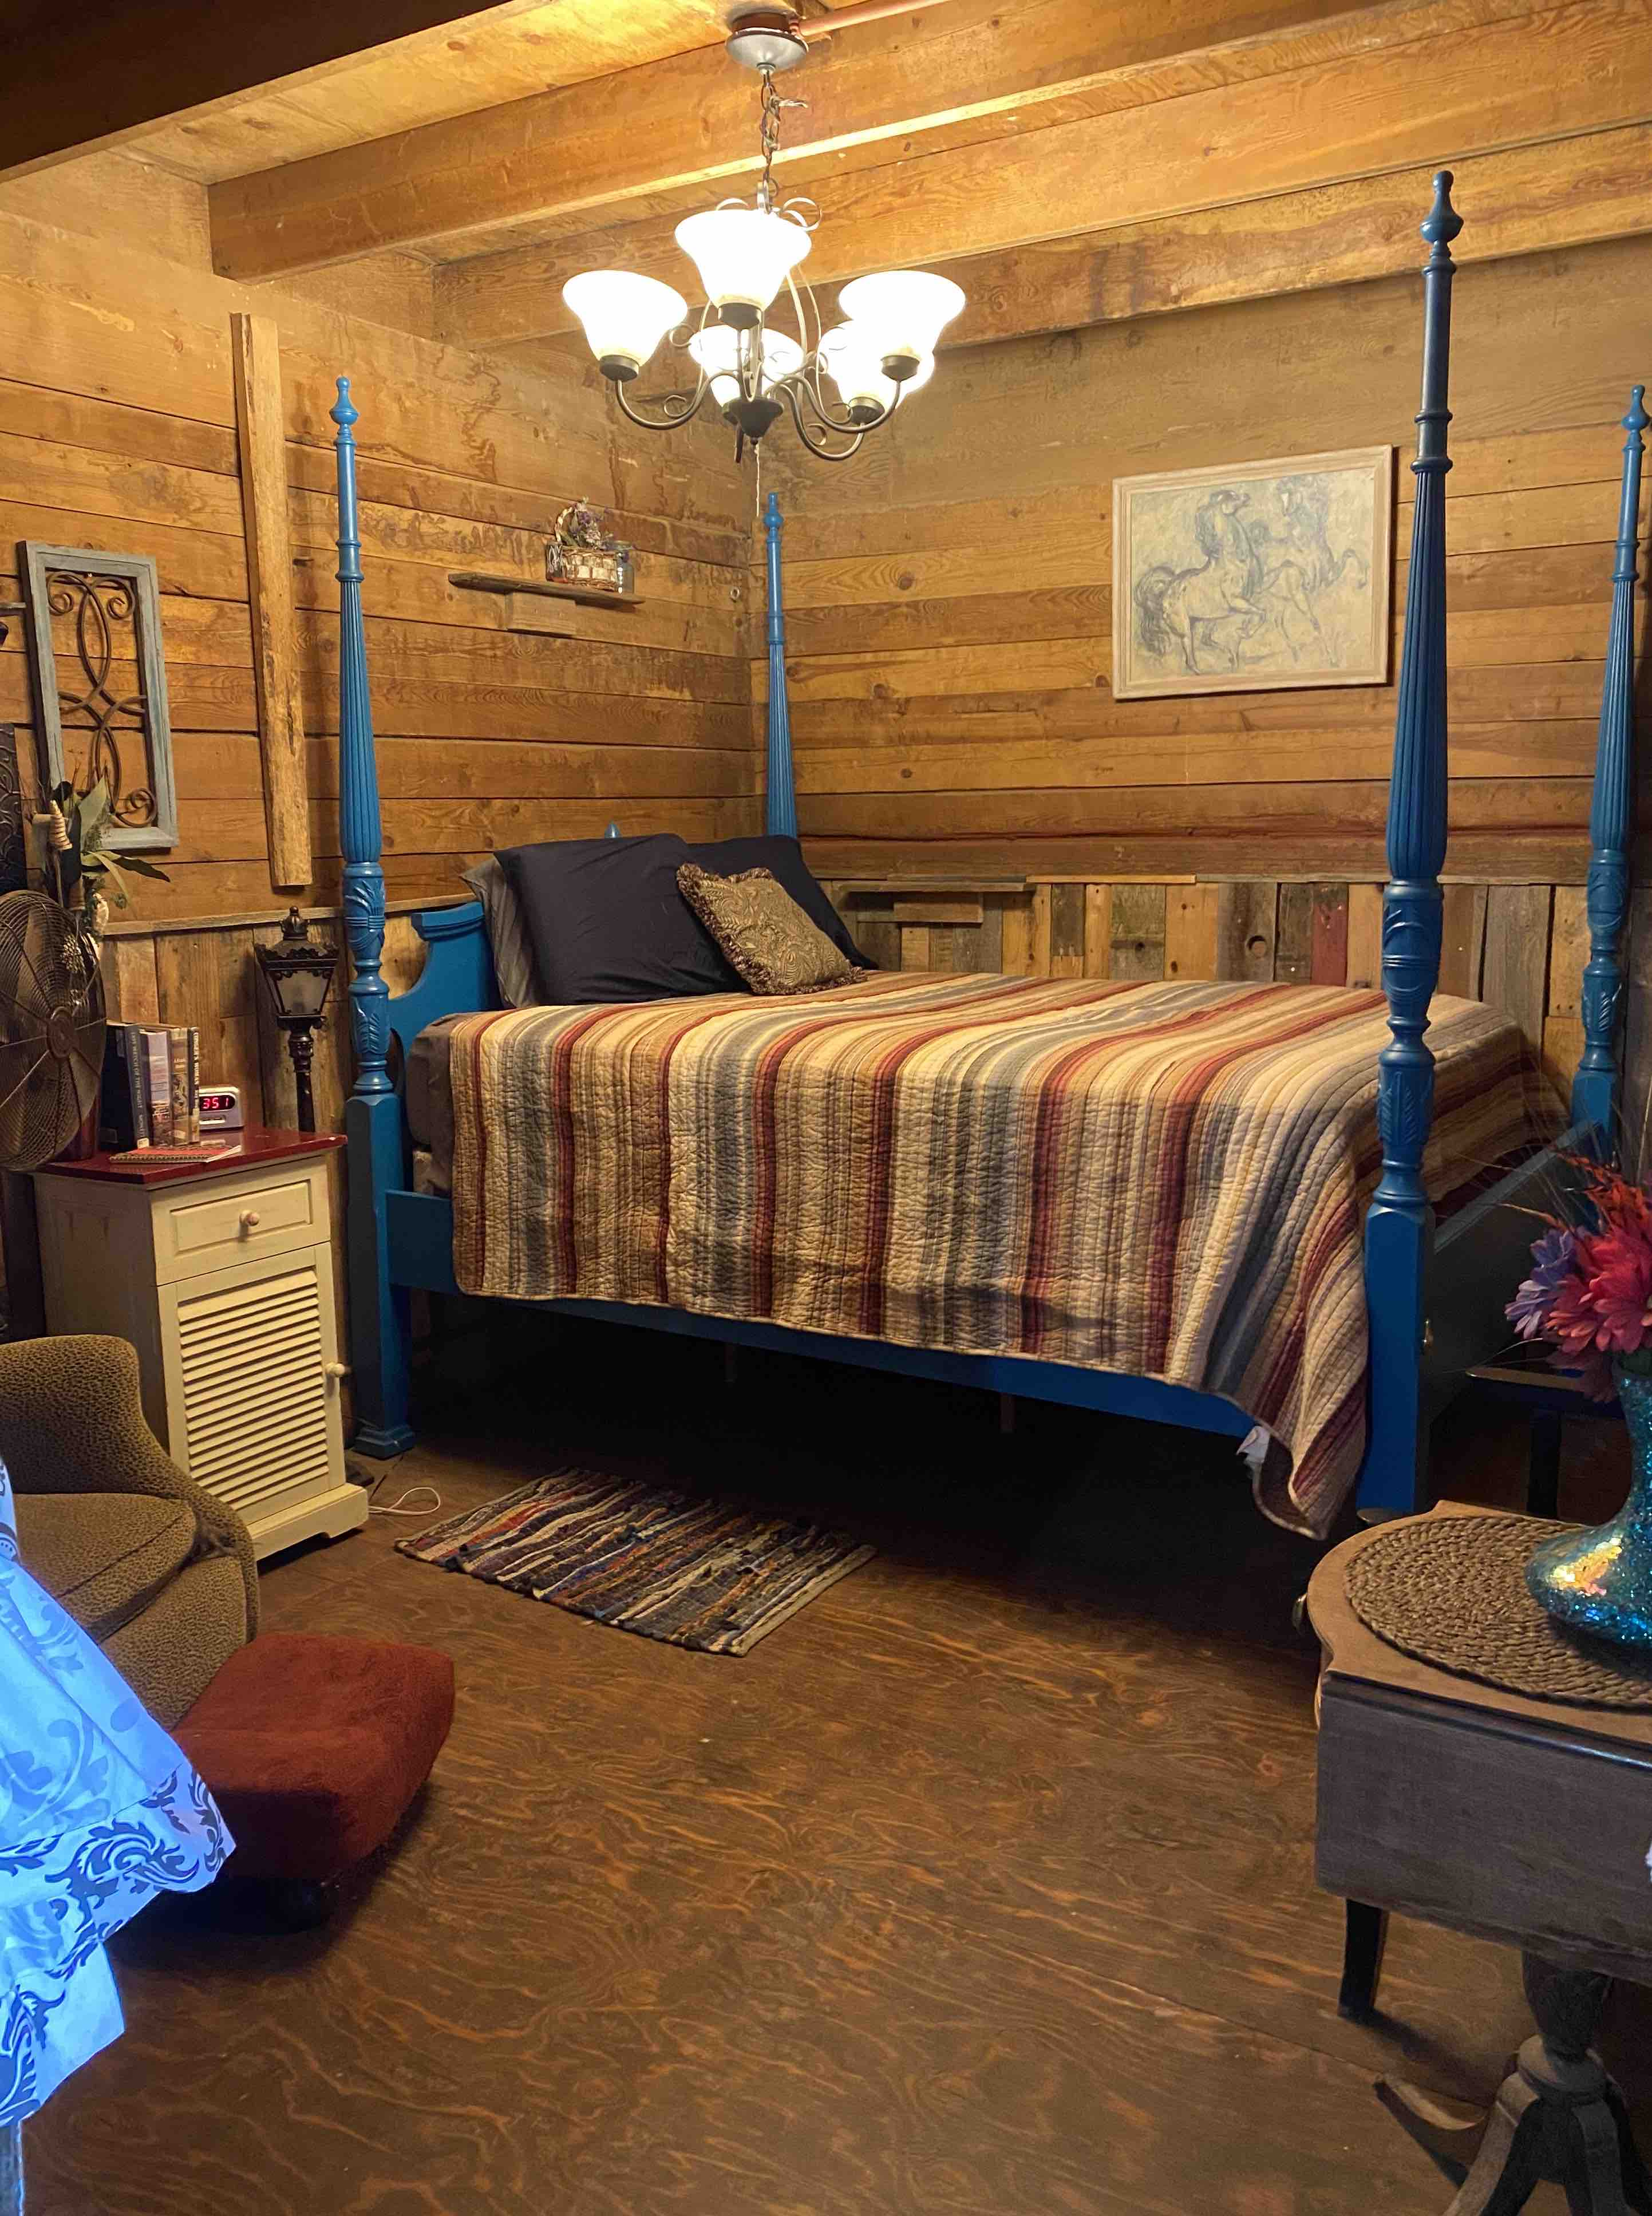 Authentic Barn Bnb Stall 2 Bed In Barn Barns For Rent In Spokane Washington United States